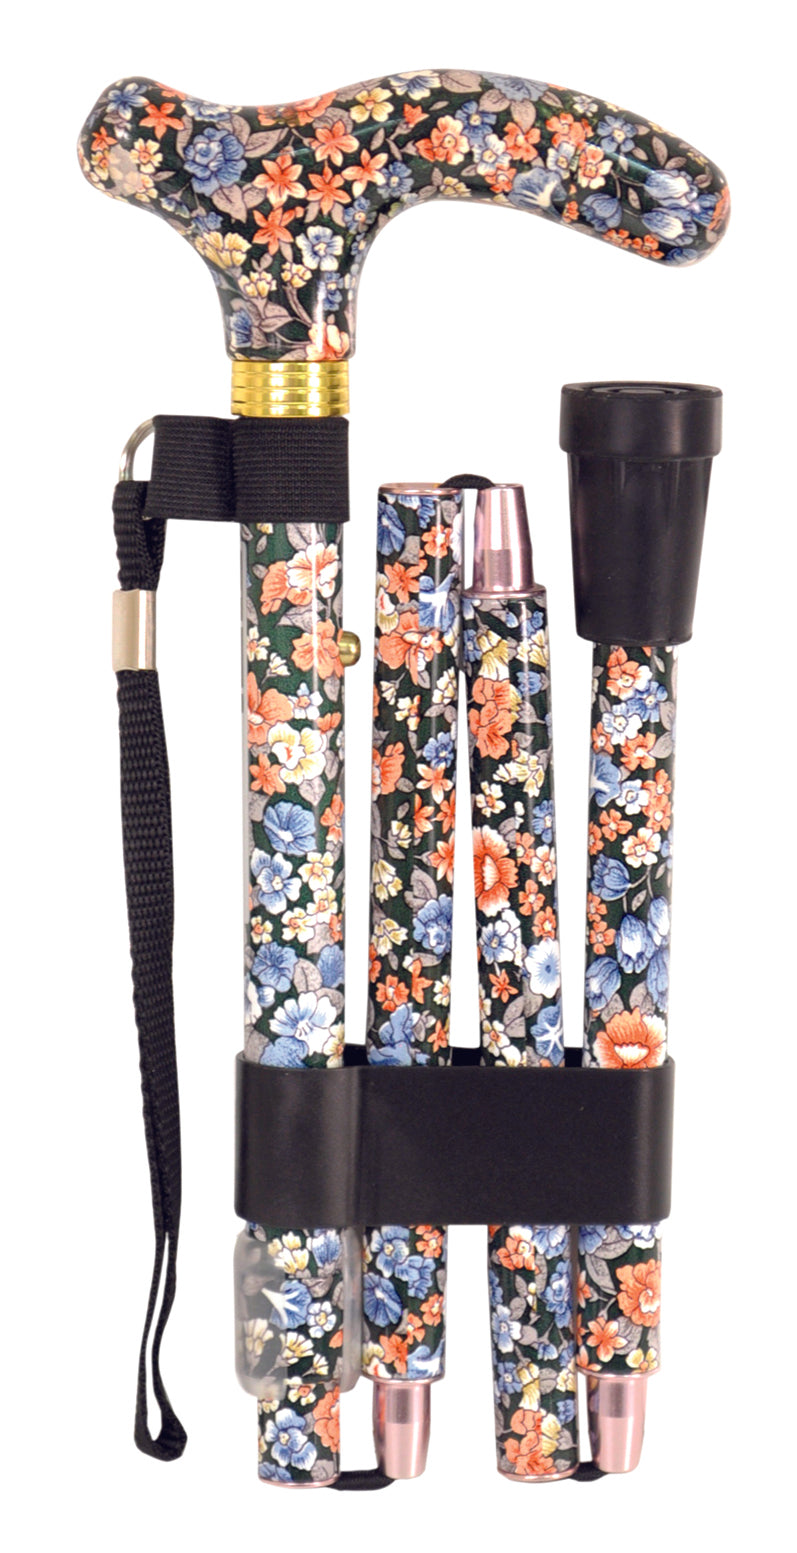 Deluxe Folding Walking Cane Japanese Floral